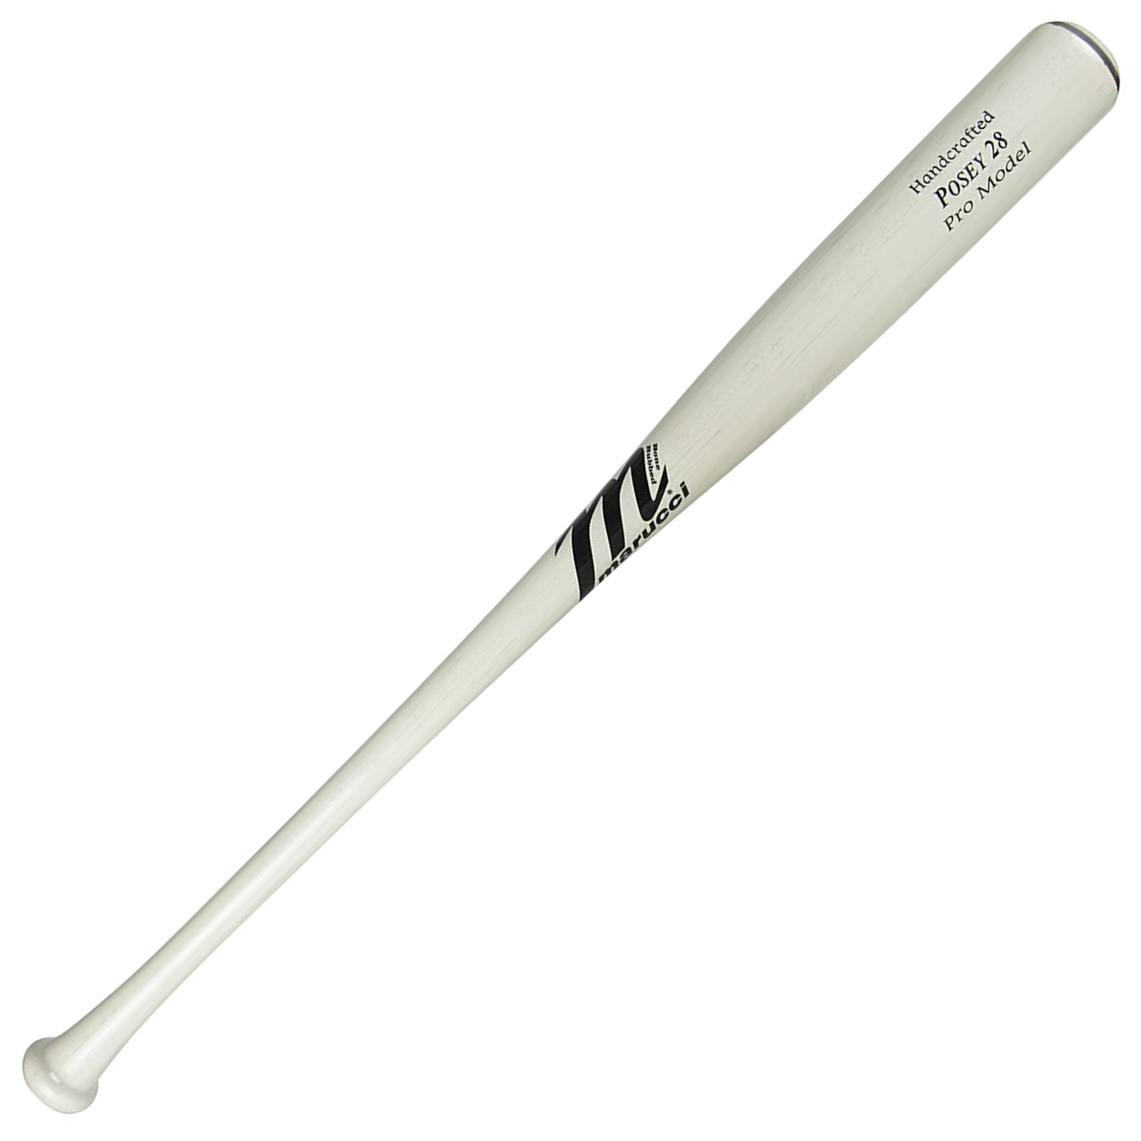 marucci-posey28-maple-wood-baseball-bat-whitewash-33-inch MVE2POSEY28-WW-33   Handcrafted from top-quality maple Bone rubbed for ultimate wood density Recommended